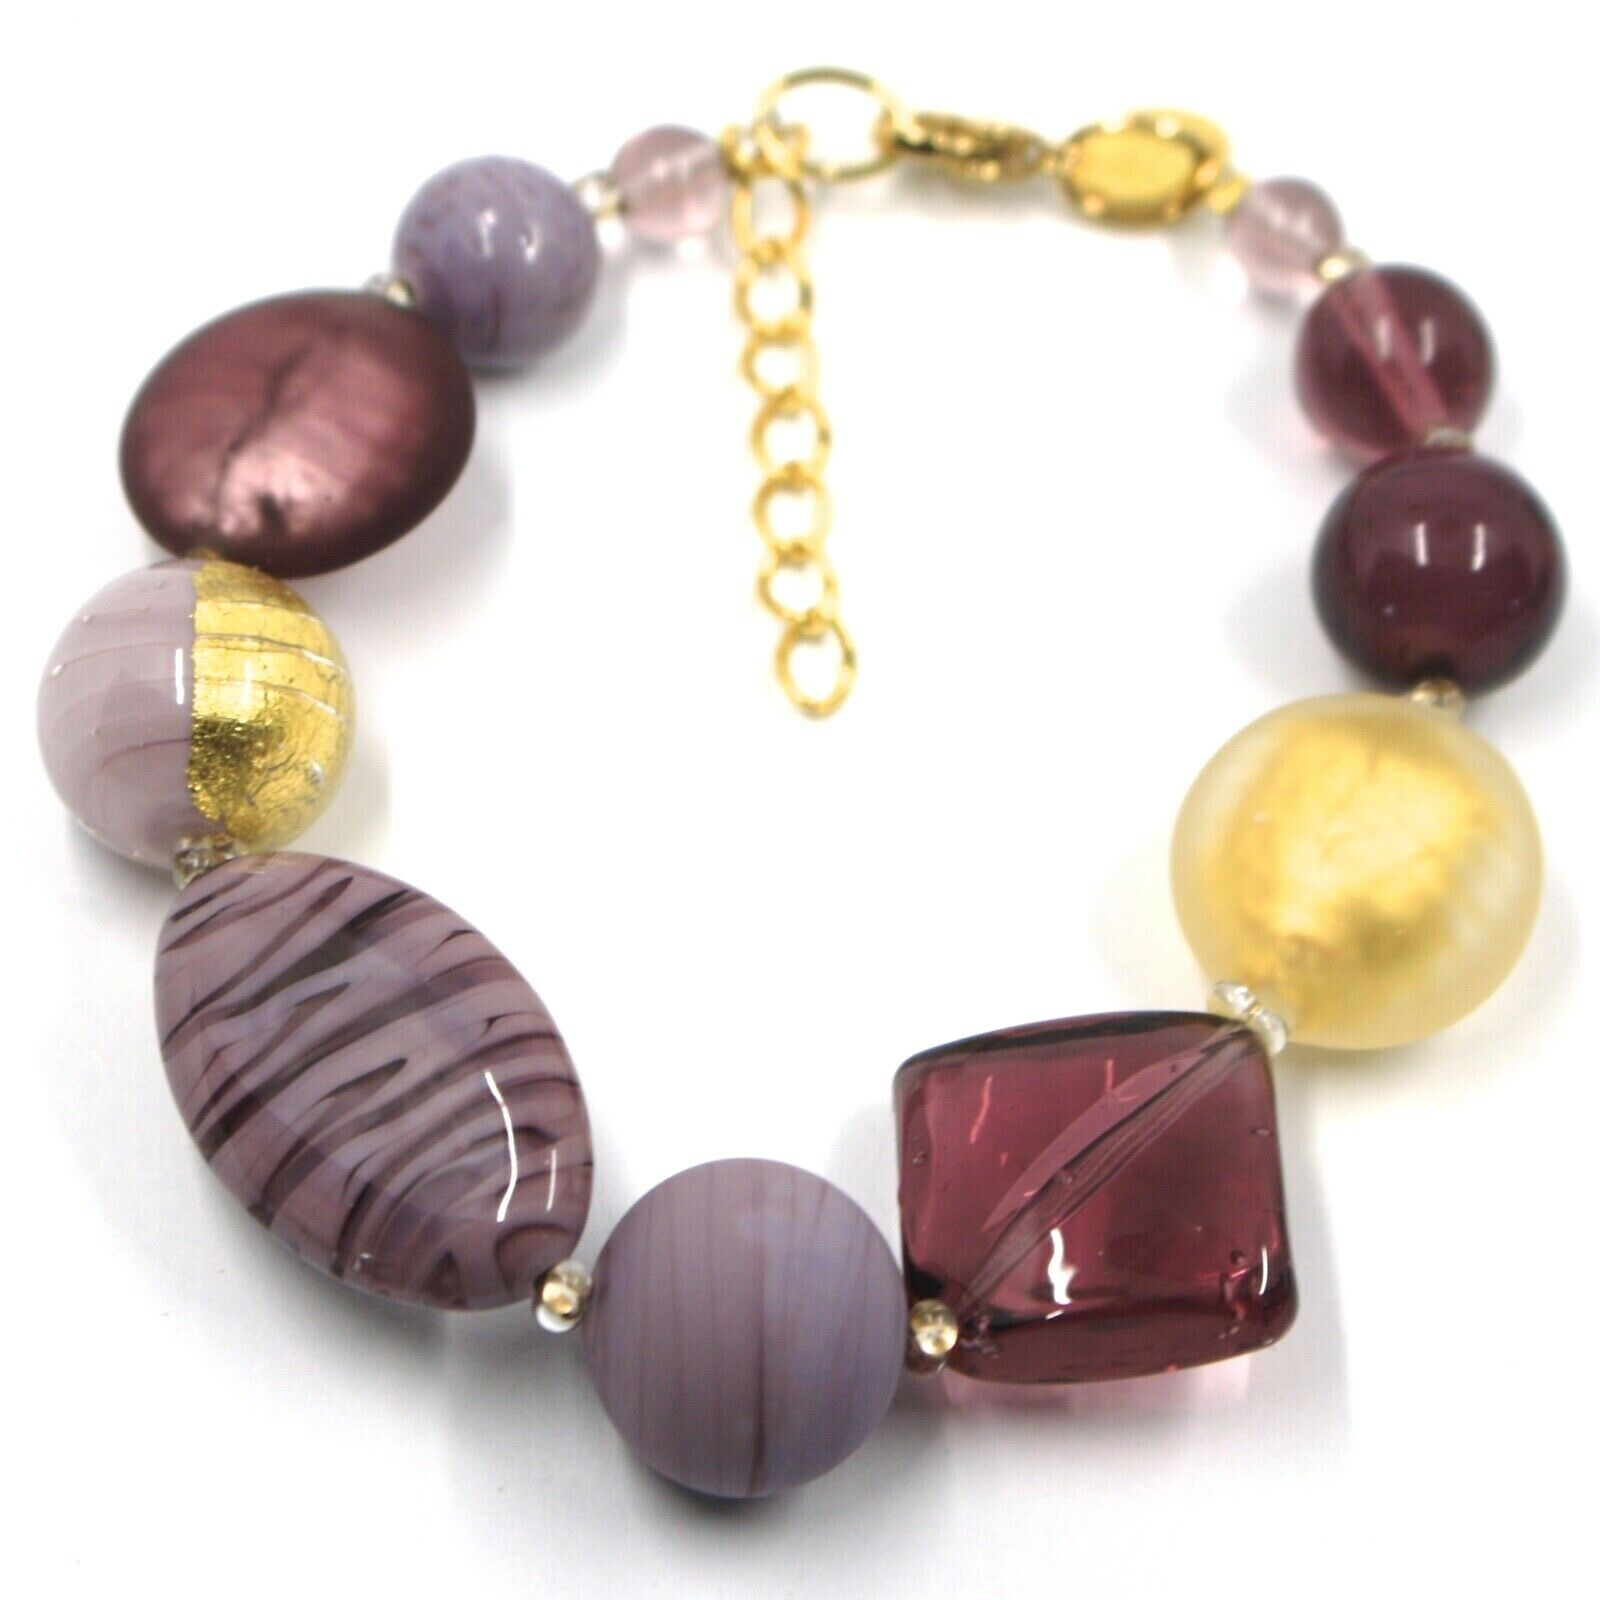 BRACELET PURPLE SPHERE OVAL DISC SQUARE MURANO GLASS GOLD LEAF, MADE IN ITALY